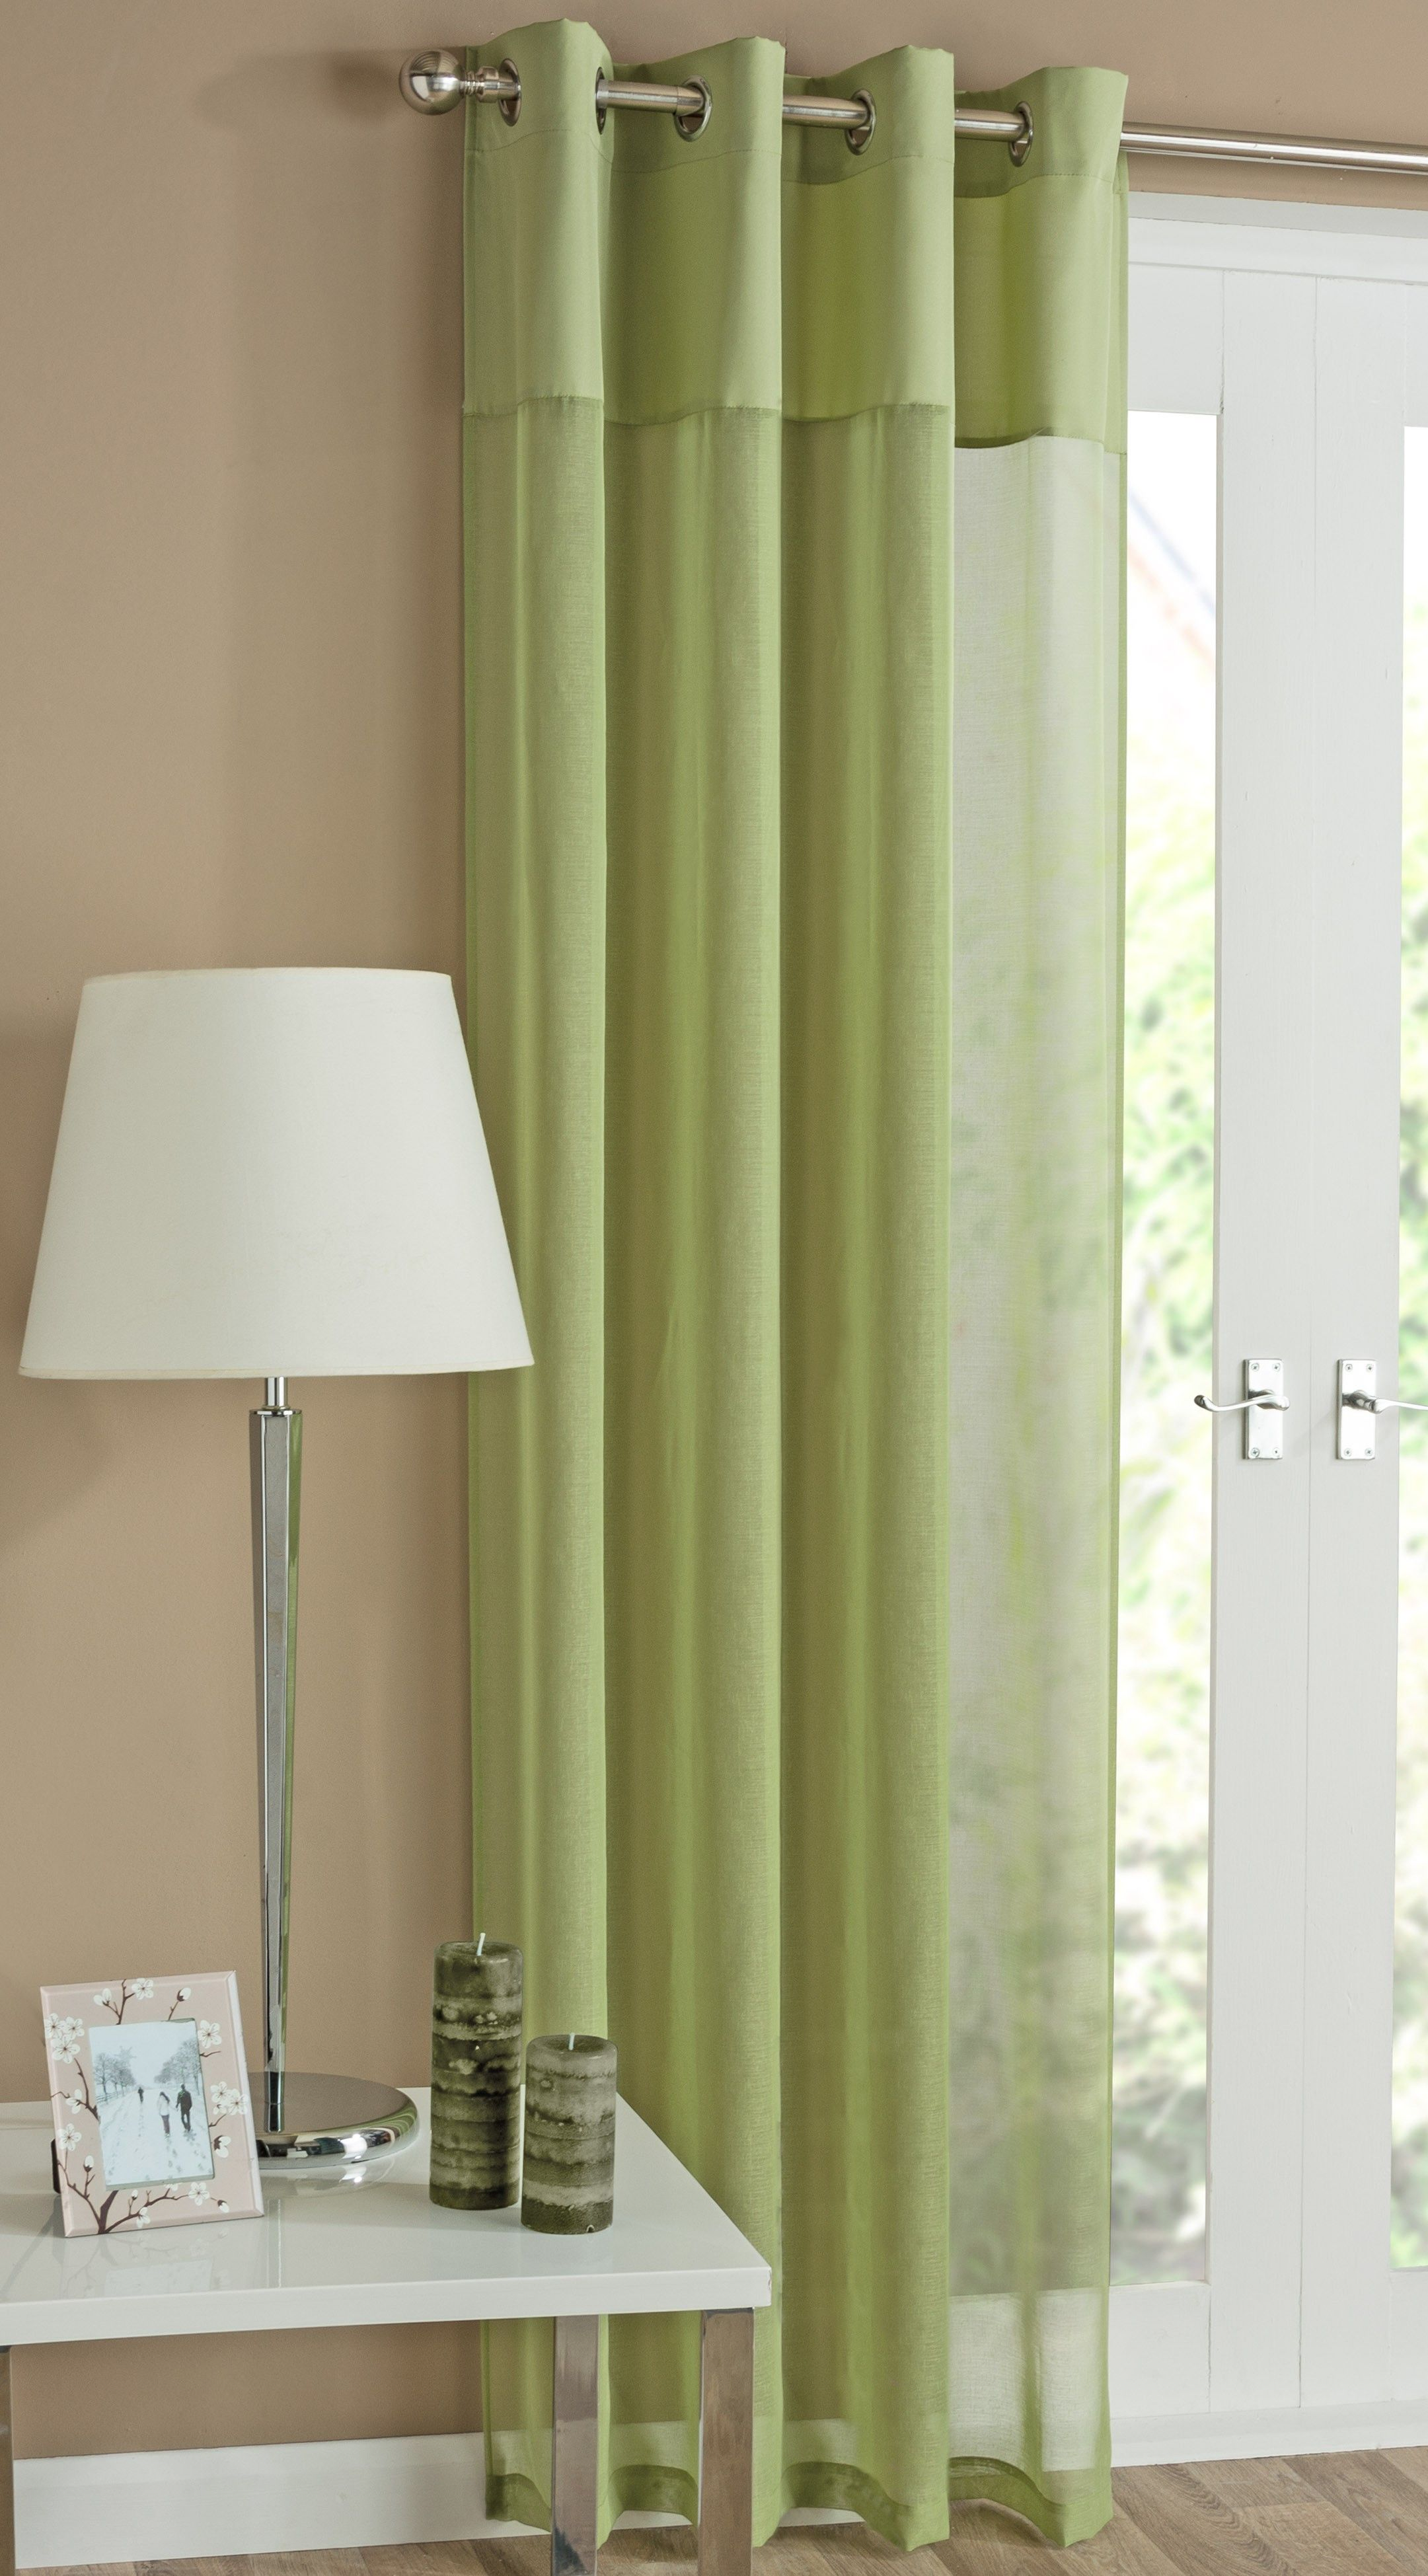 curtain photo green curtains photooncept home design new drapes concept bedroom emerald blackout dark bedroomgreen bathroom view for greenurtains formidable